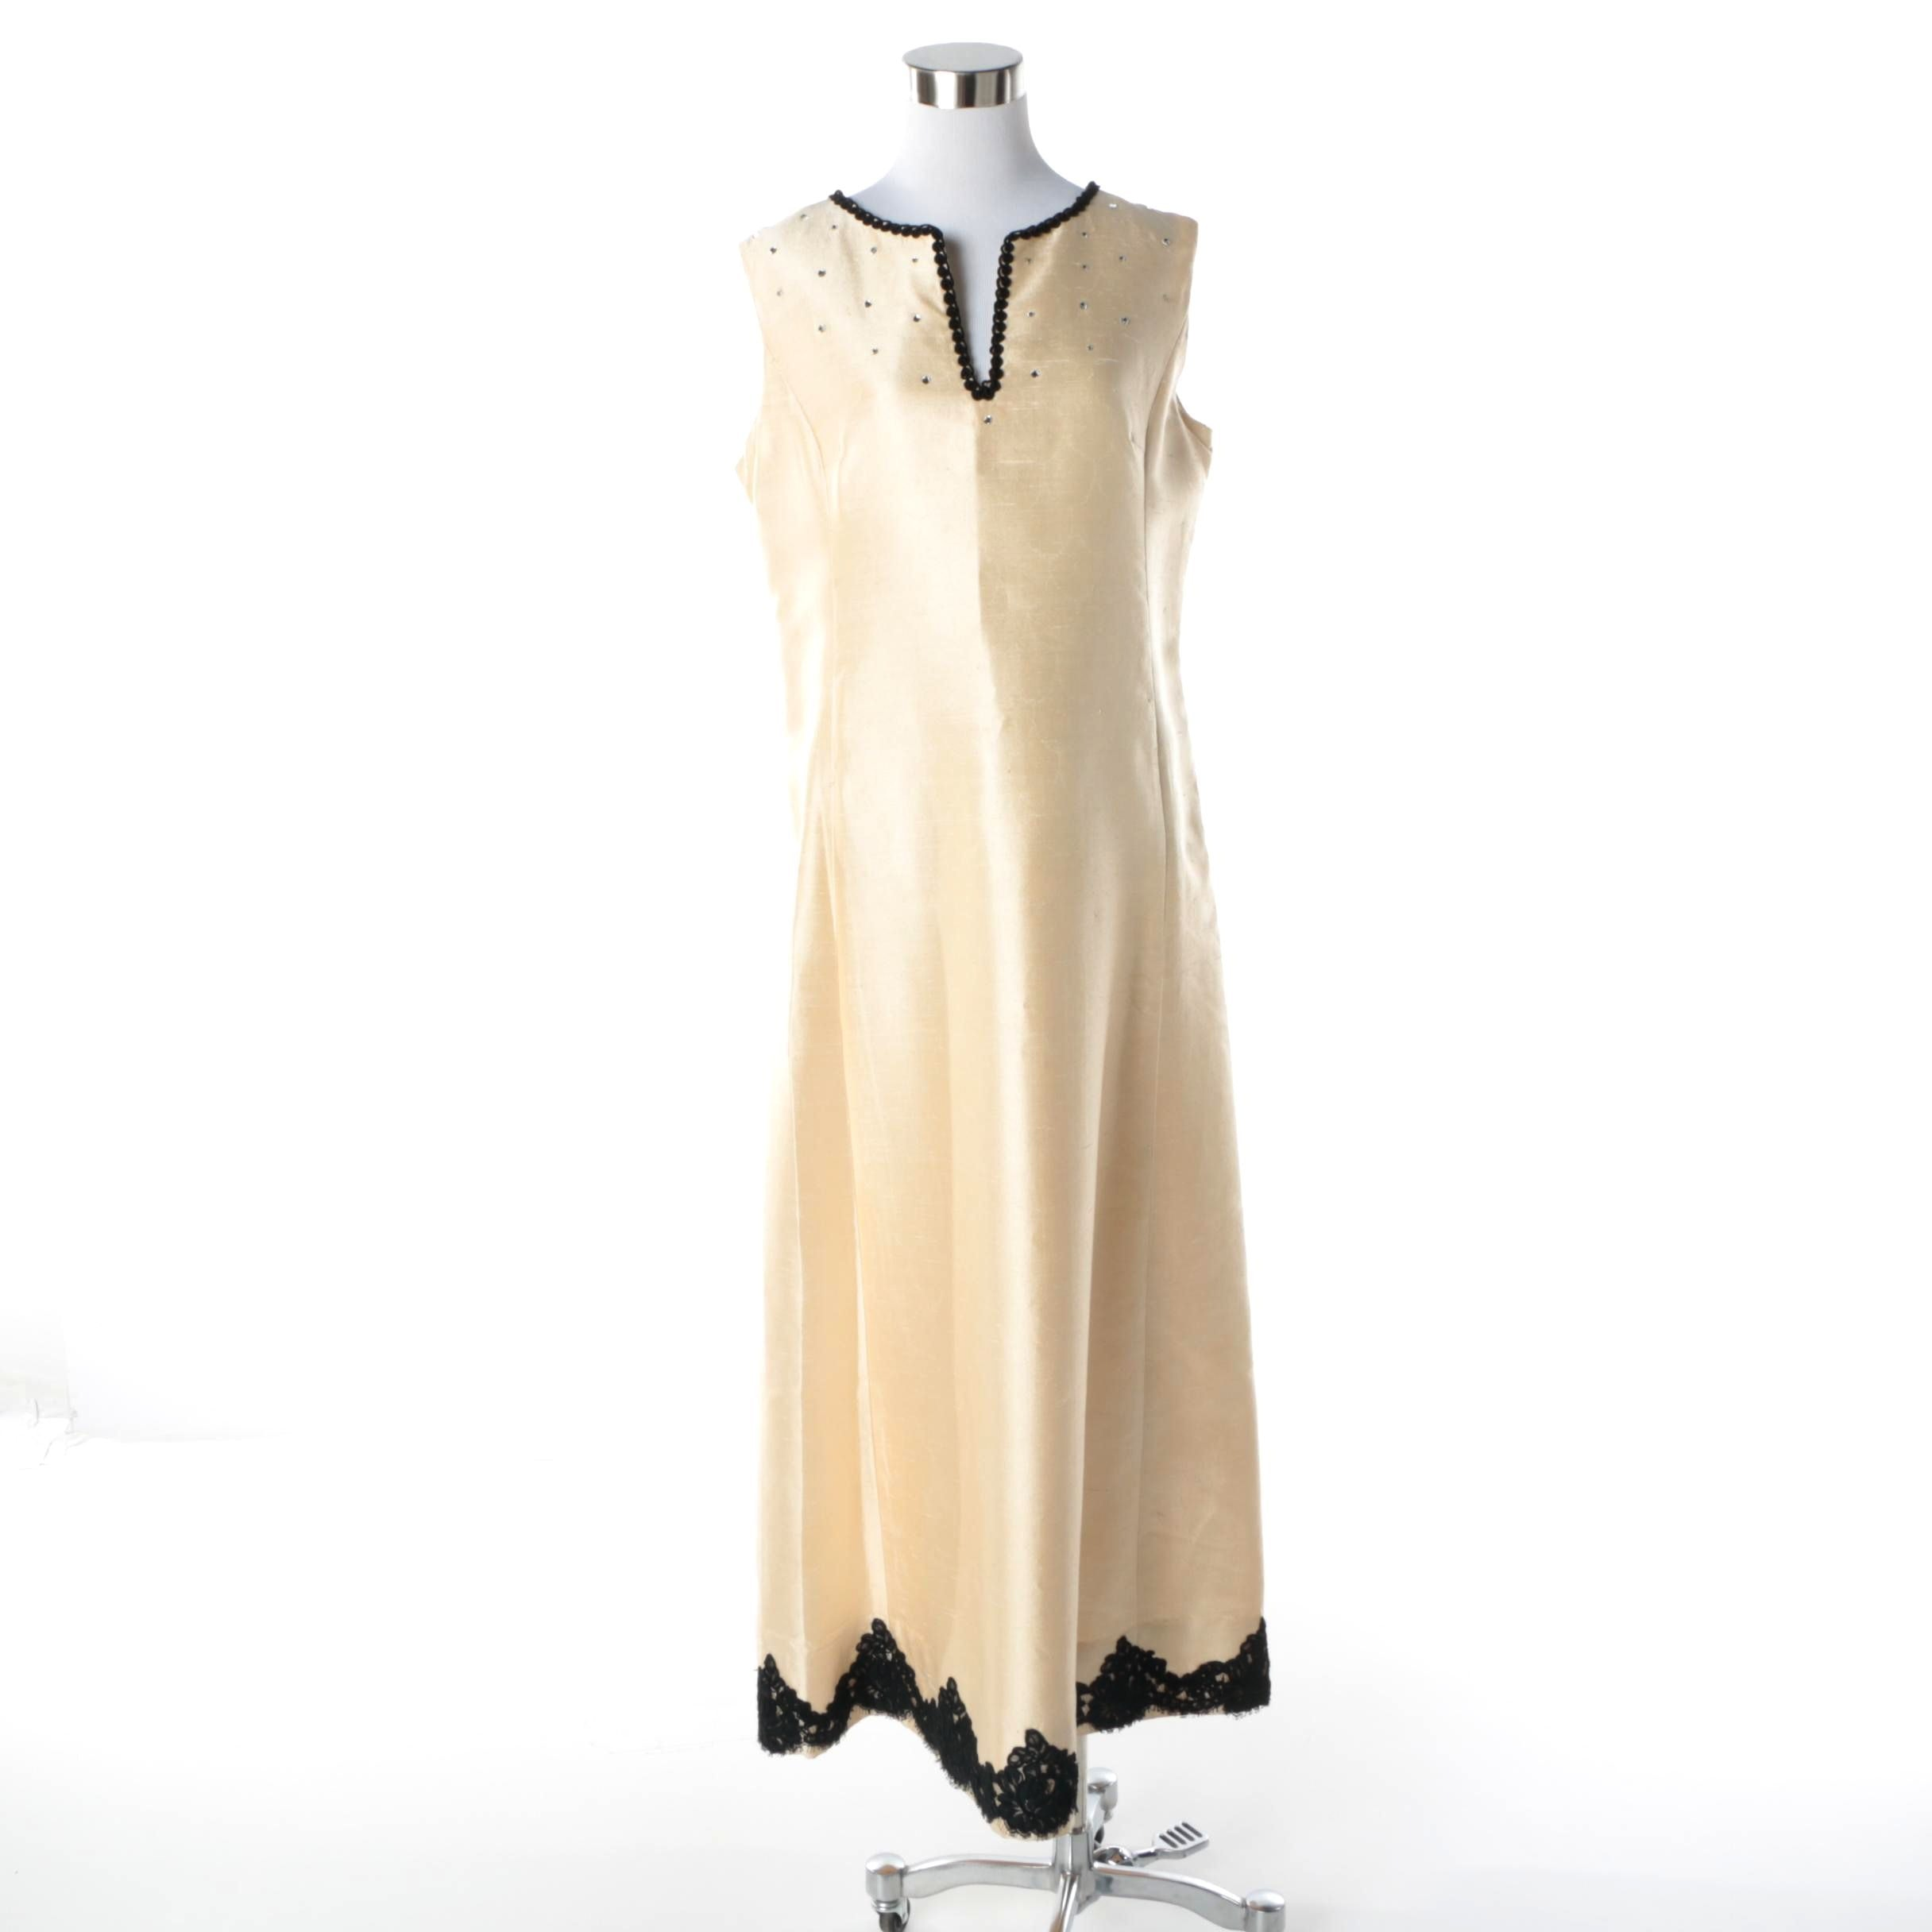 1960s Gino Charles Cream Raw Silk Sleeveless Dress